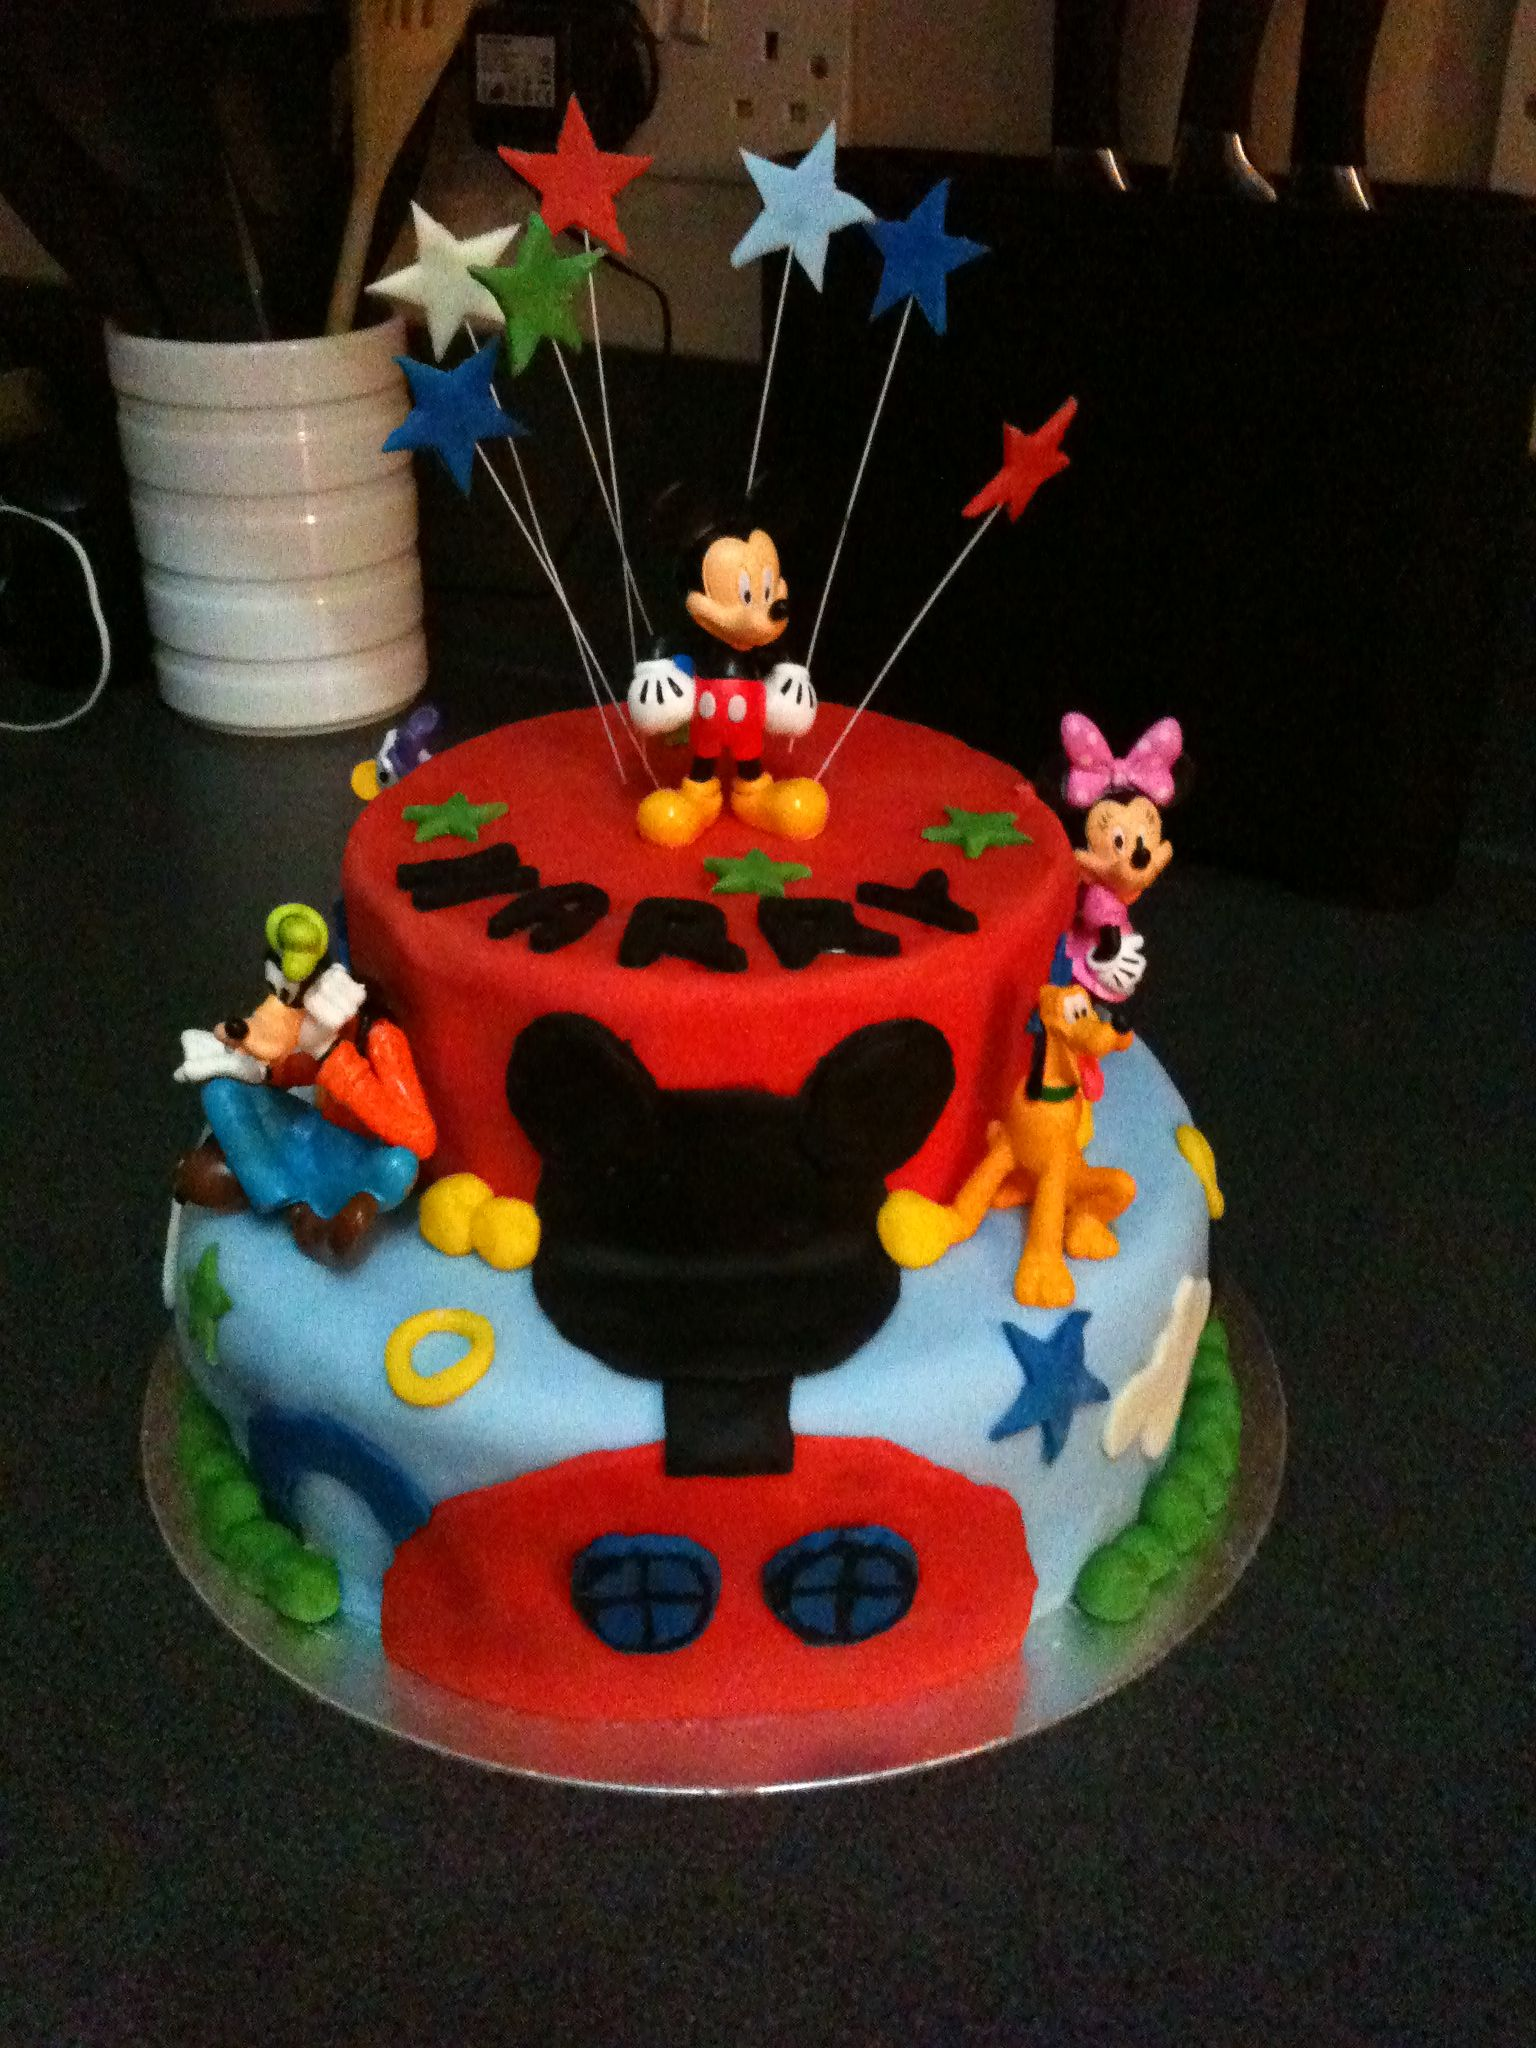 Mickey mouse cake I made!